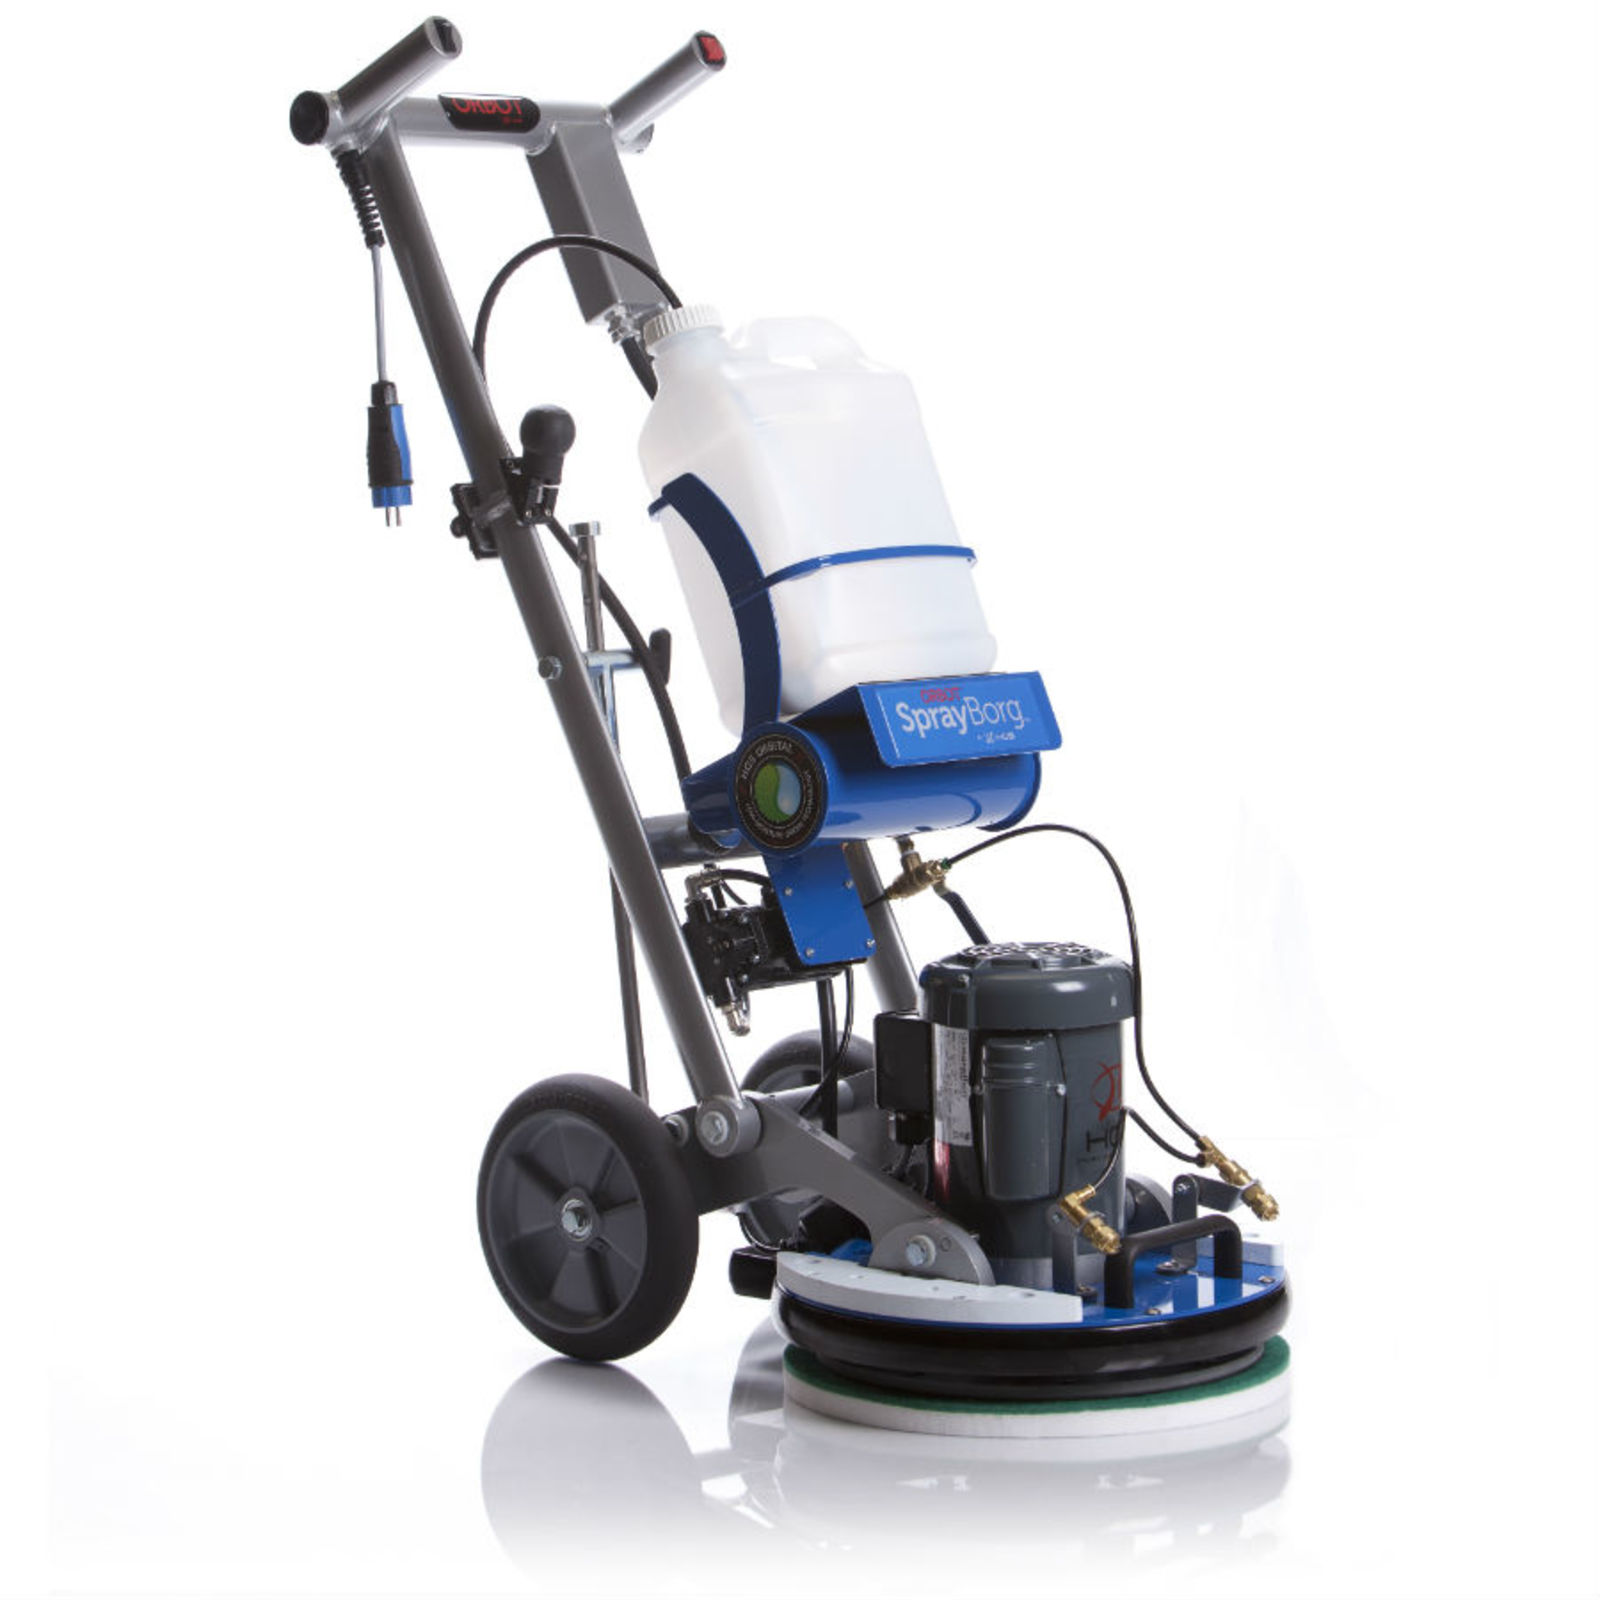 Orbot Machine Uae Supplier Intercare Is Specialized